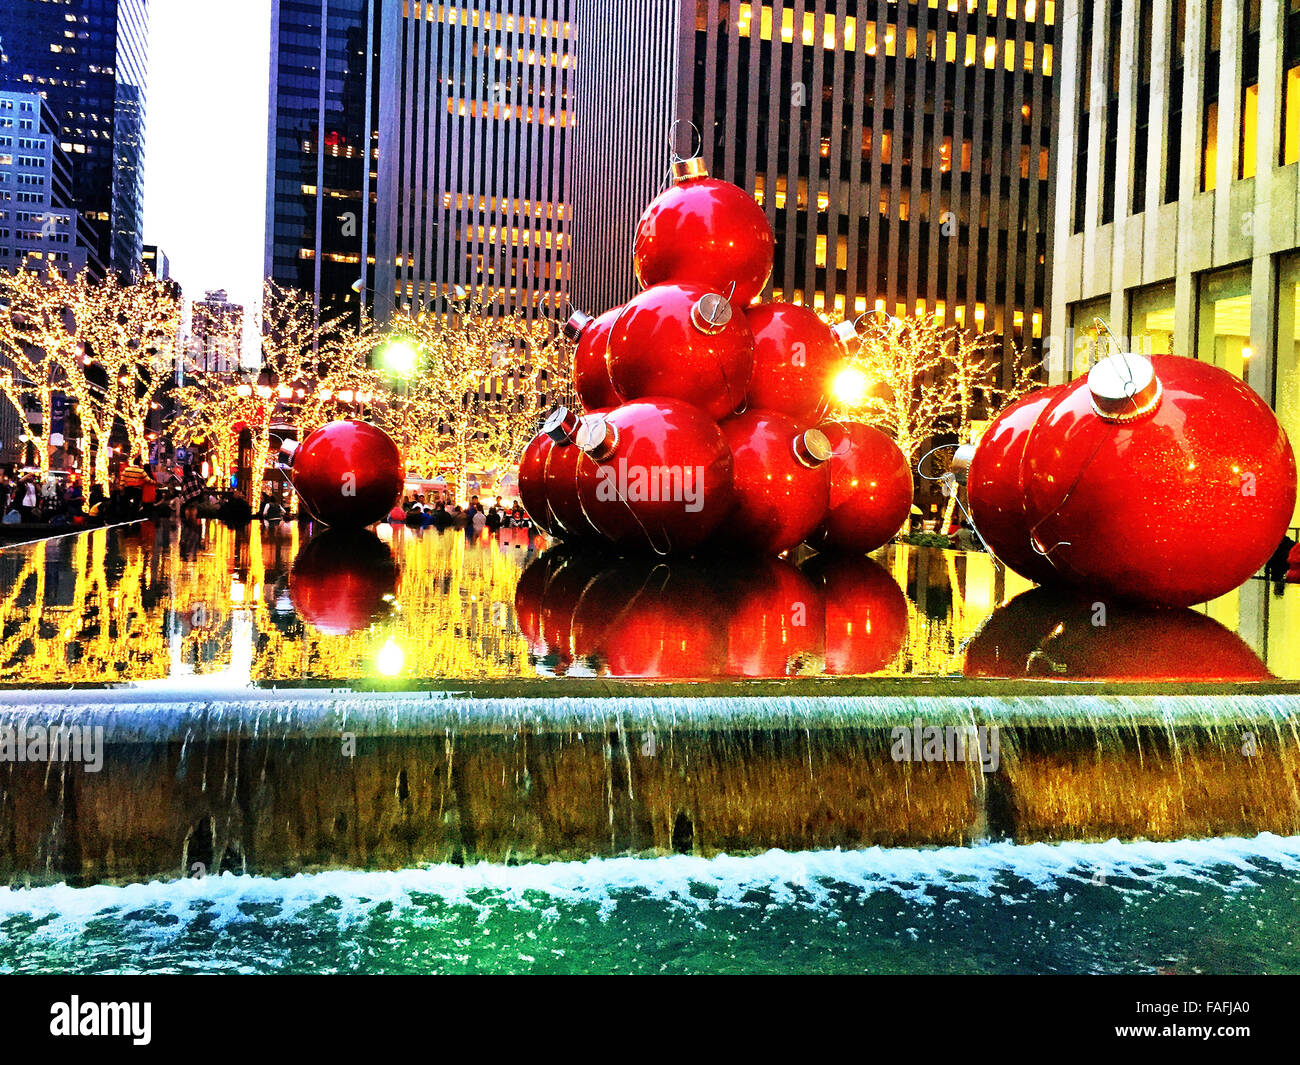 Giant Christmas Ornaments, Reflecting Pool, 1251 Avenue of the Stock ...